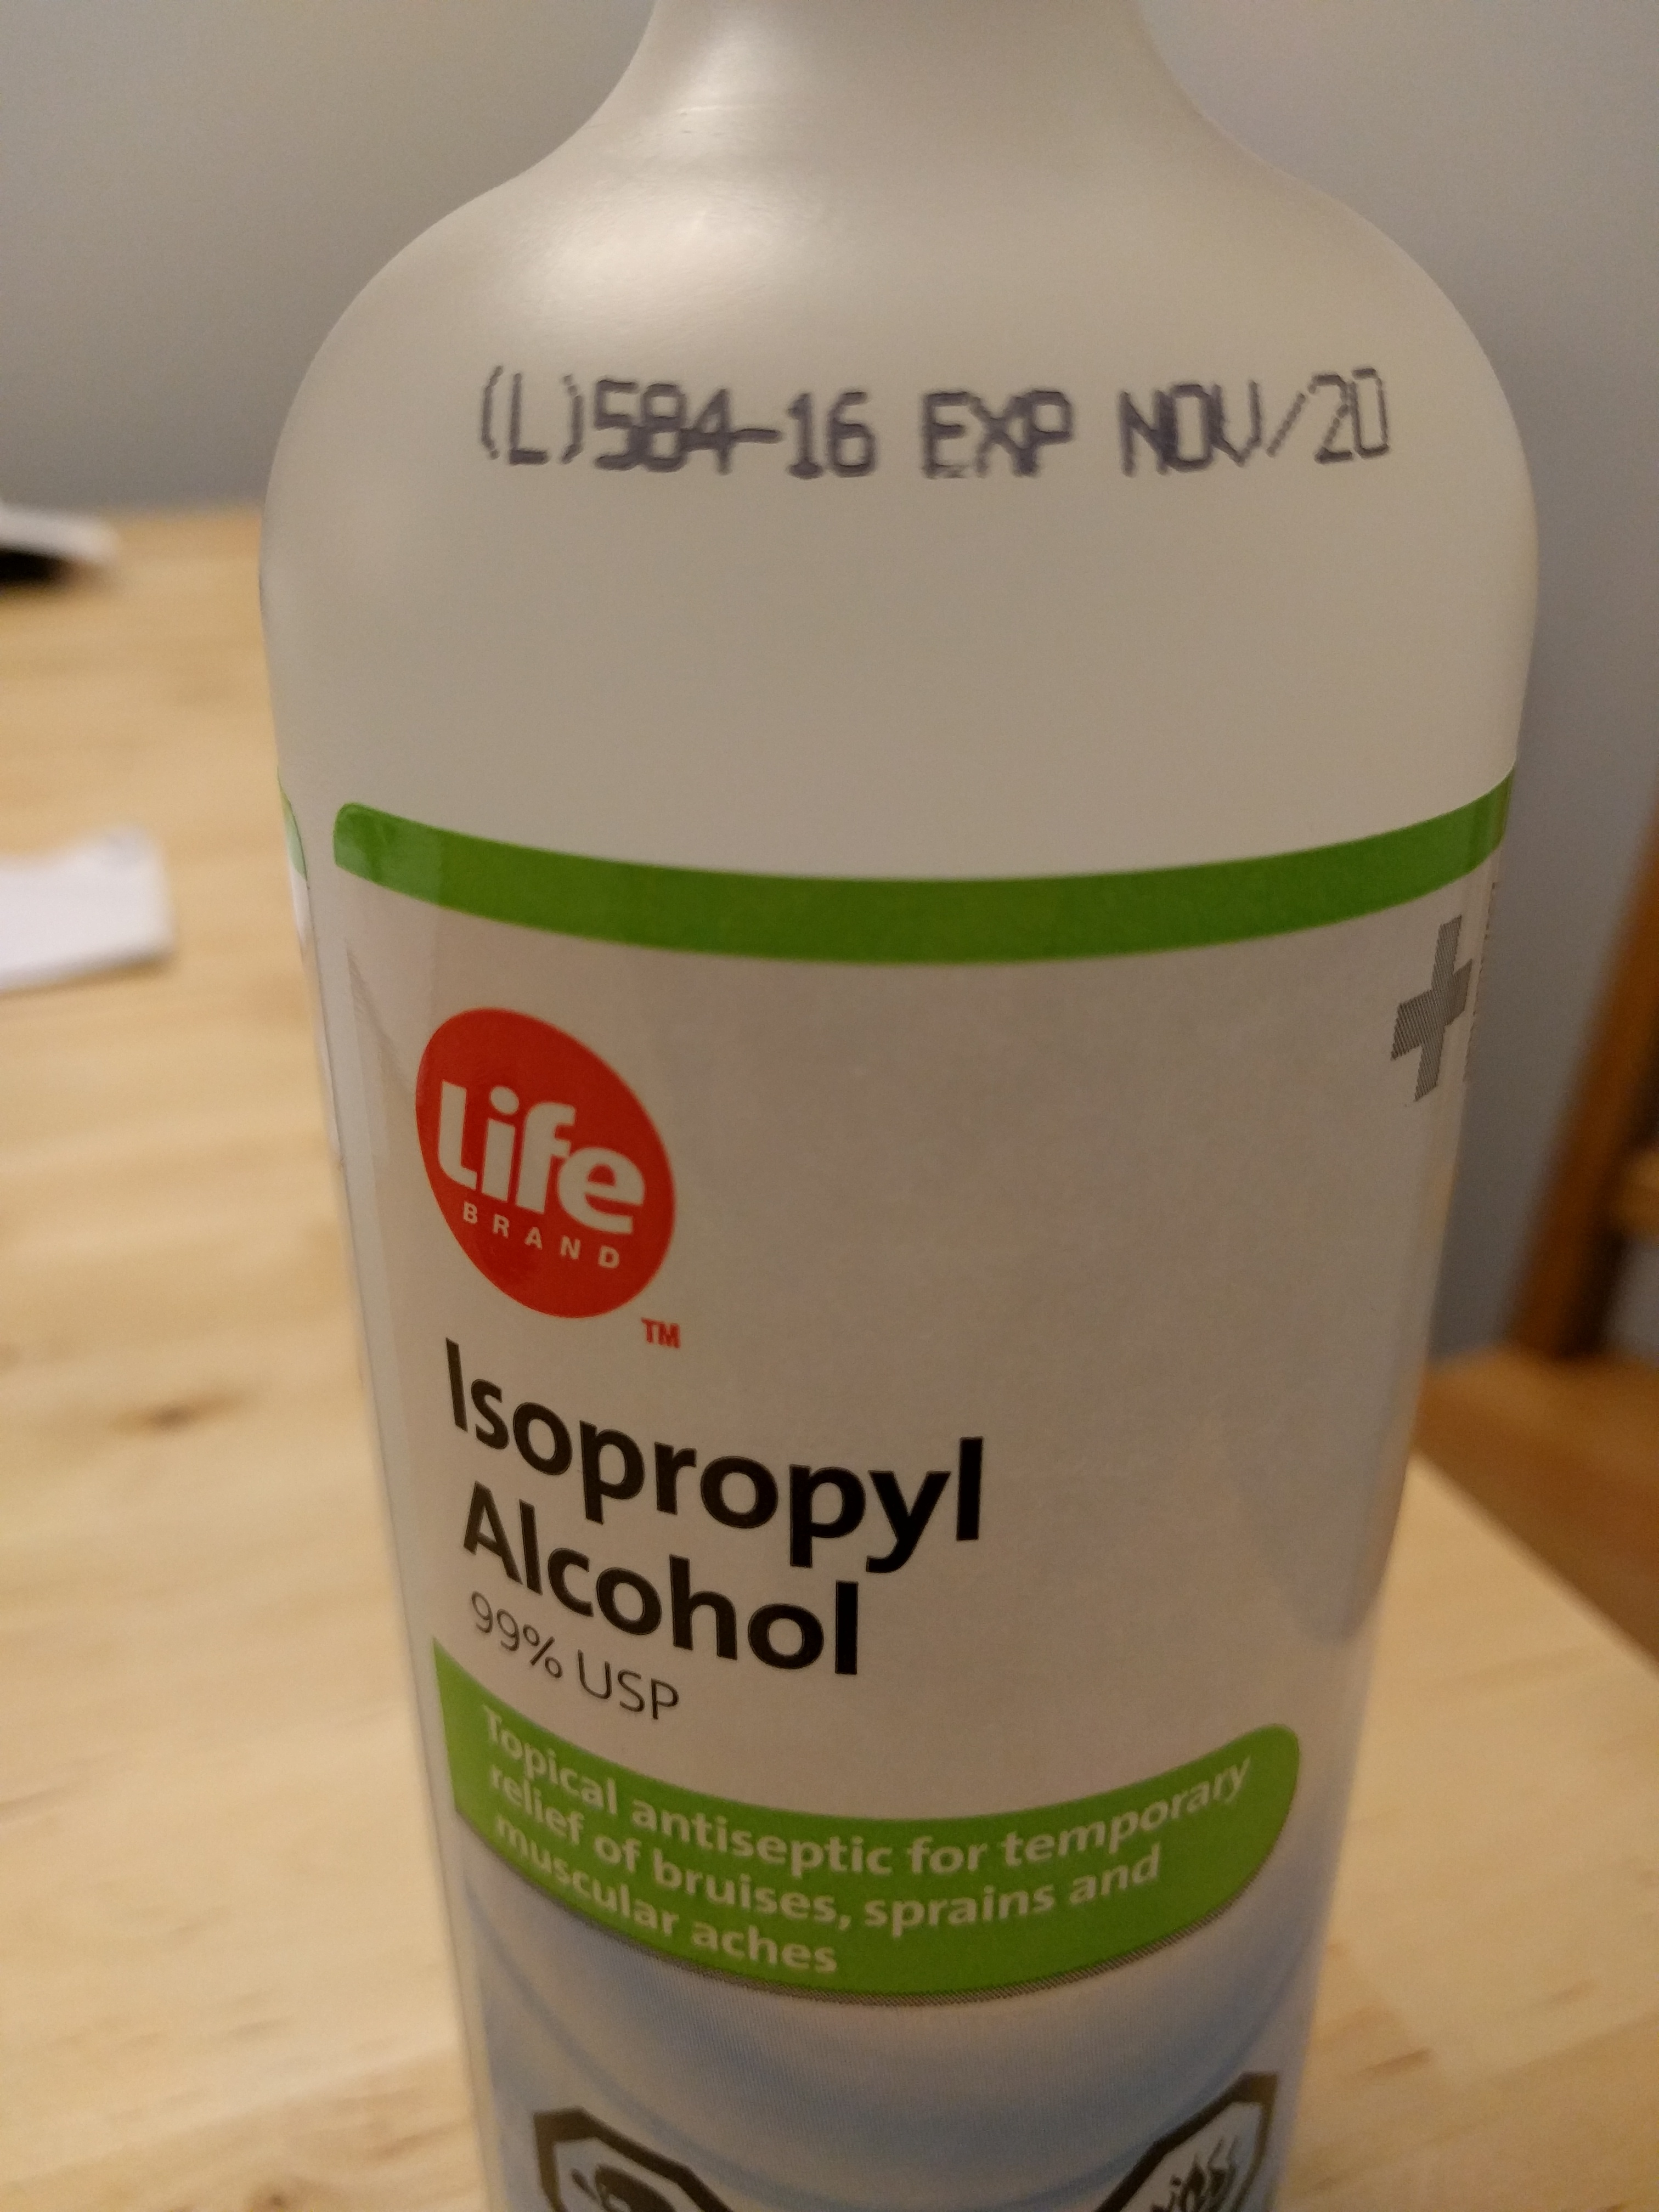 Where can I get 99% isopropyl alcohol? - General lounge